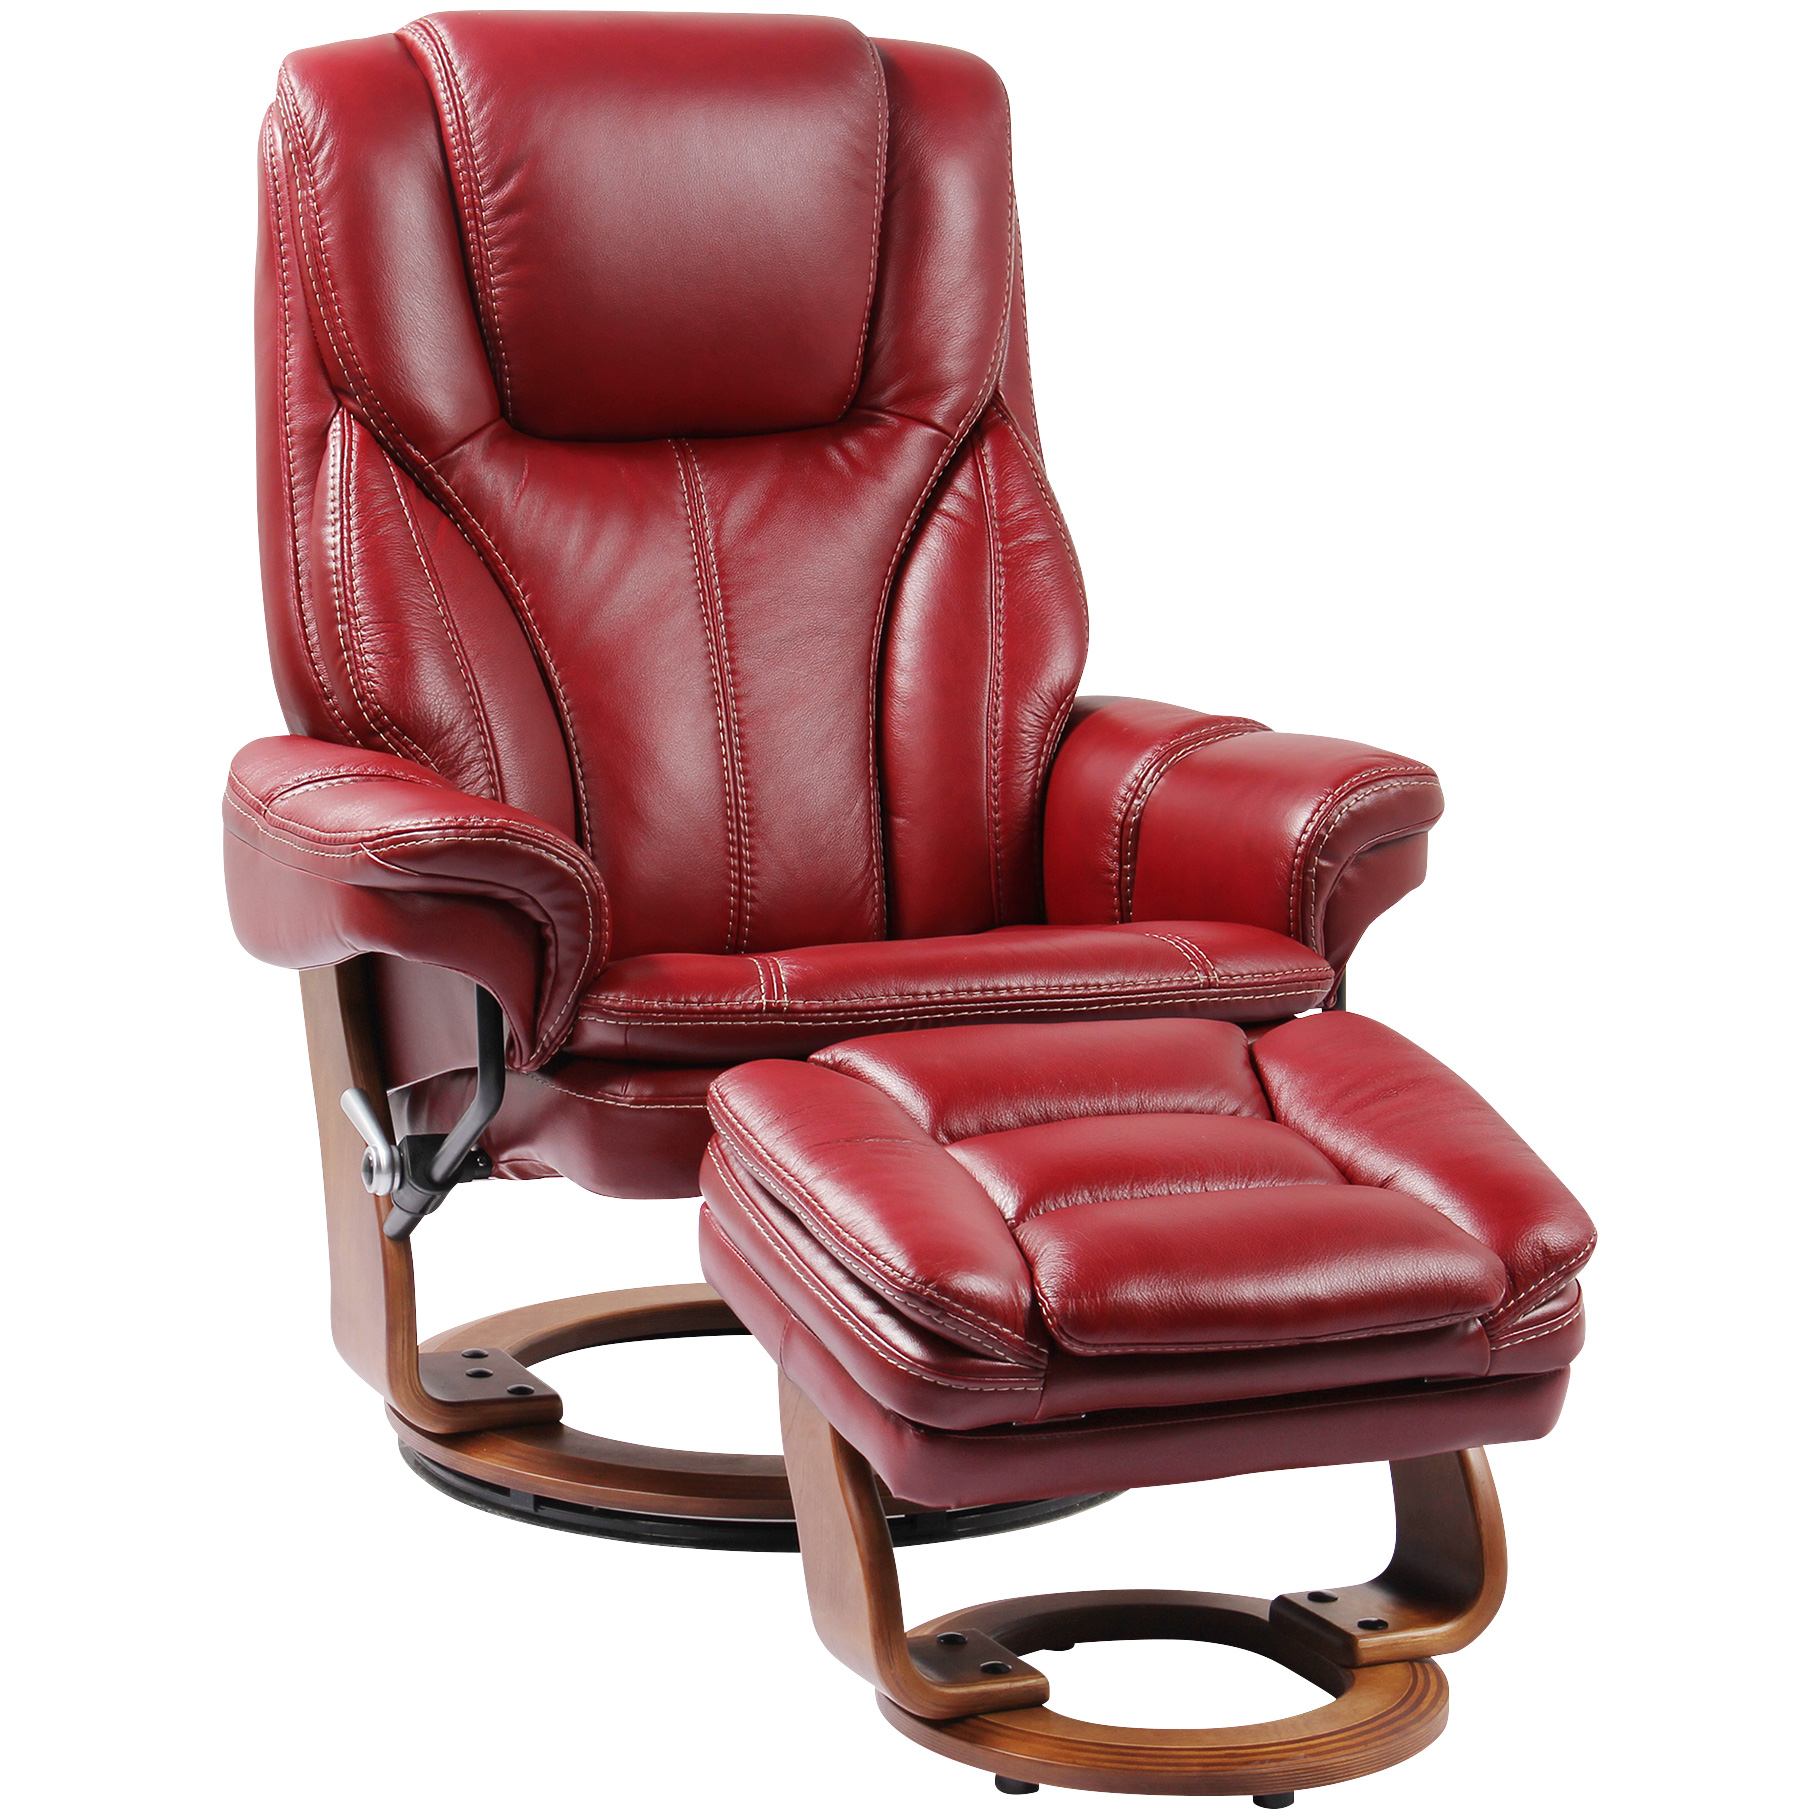 Benchmaster | Hana Red Ruby Recliner Chair with Ottoman